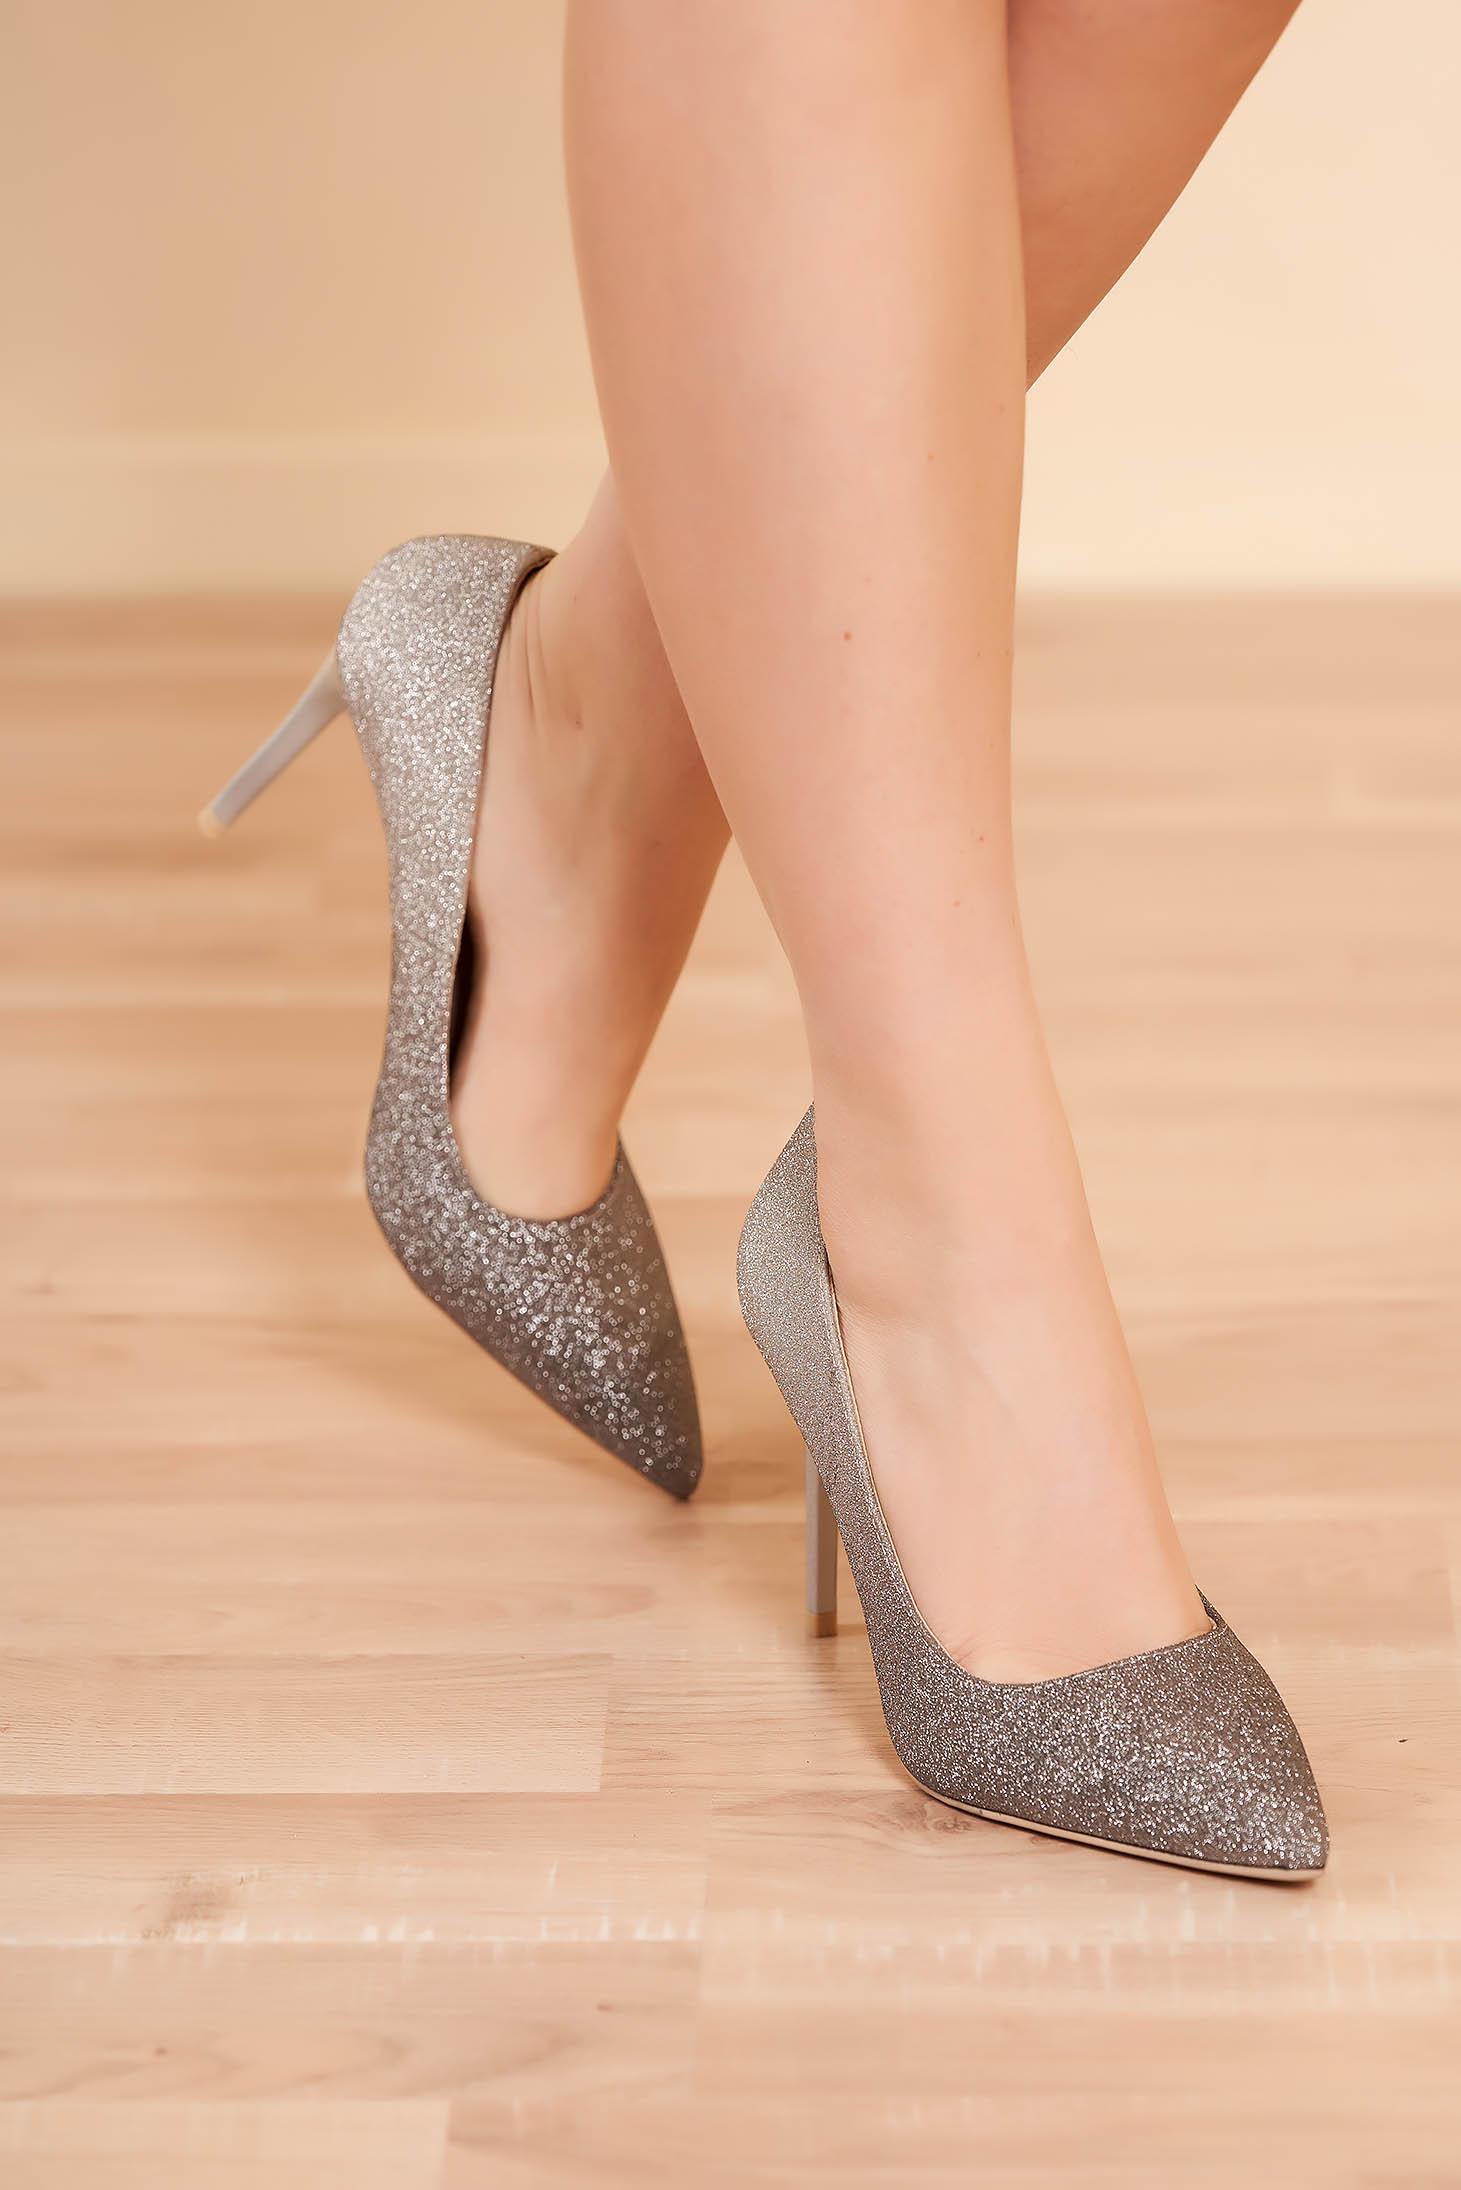 Shoes silver elegant clubbing with high heels slightly pointed toe tip with glitter details